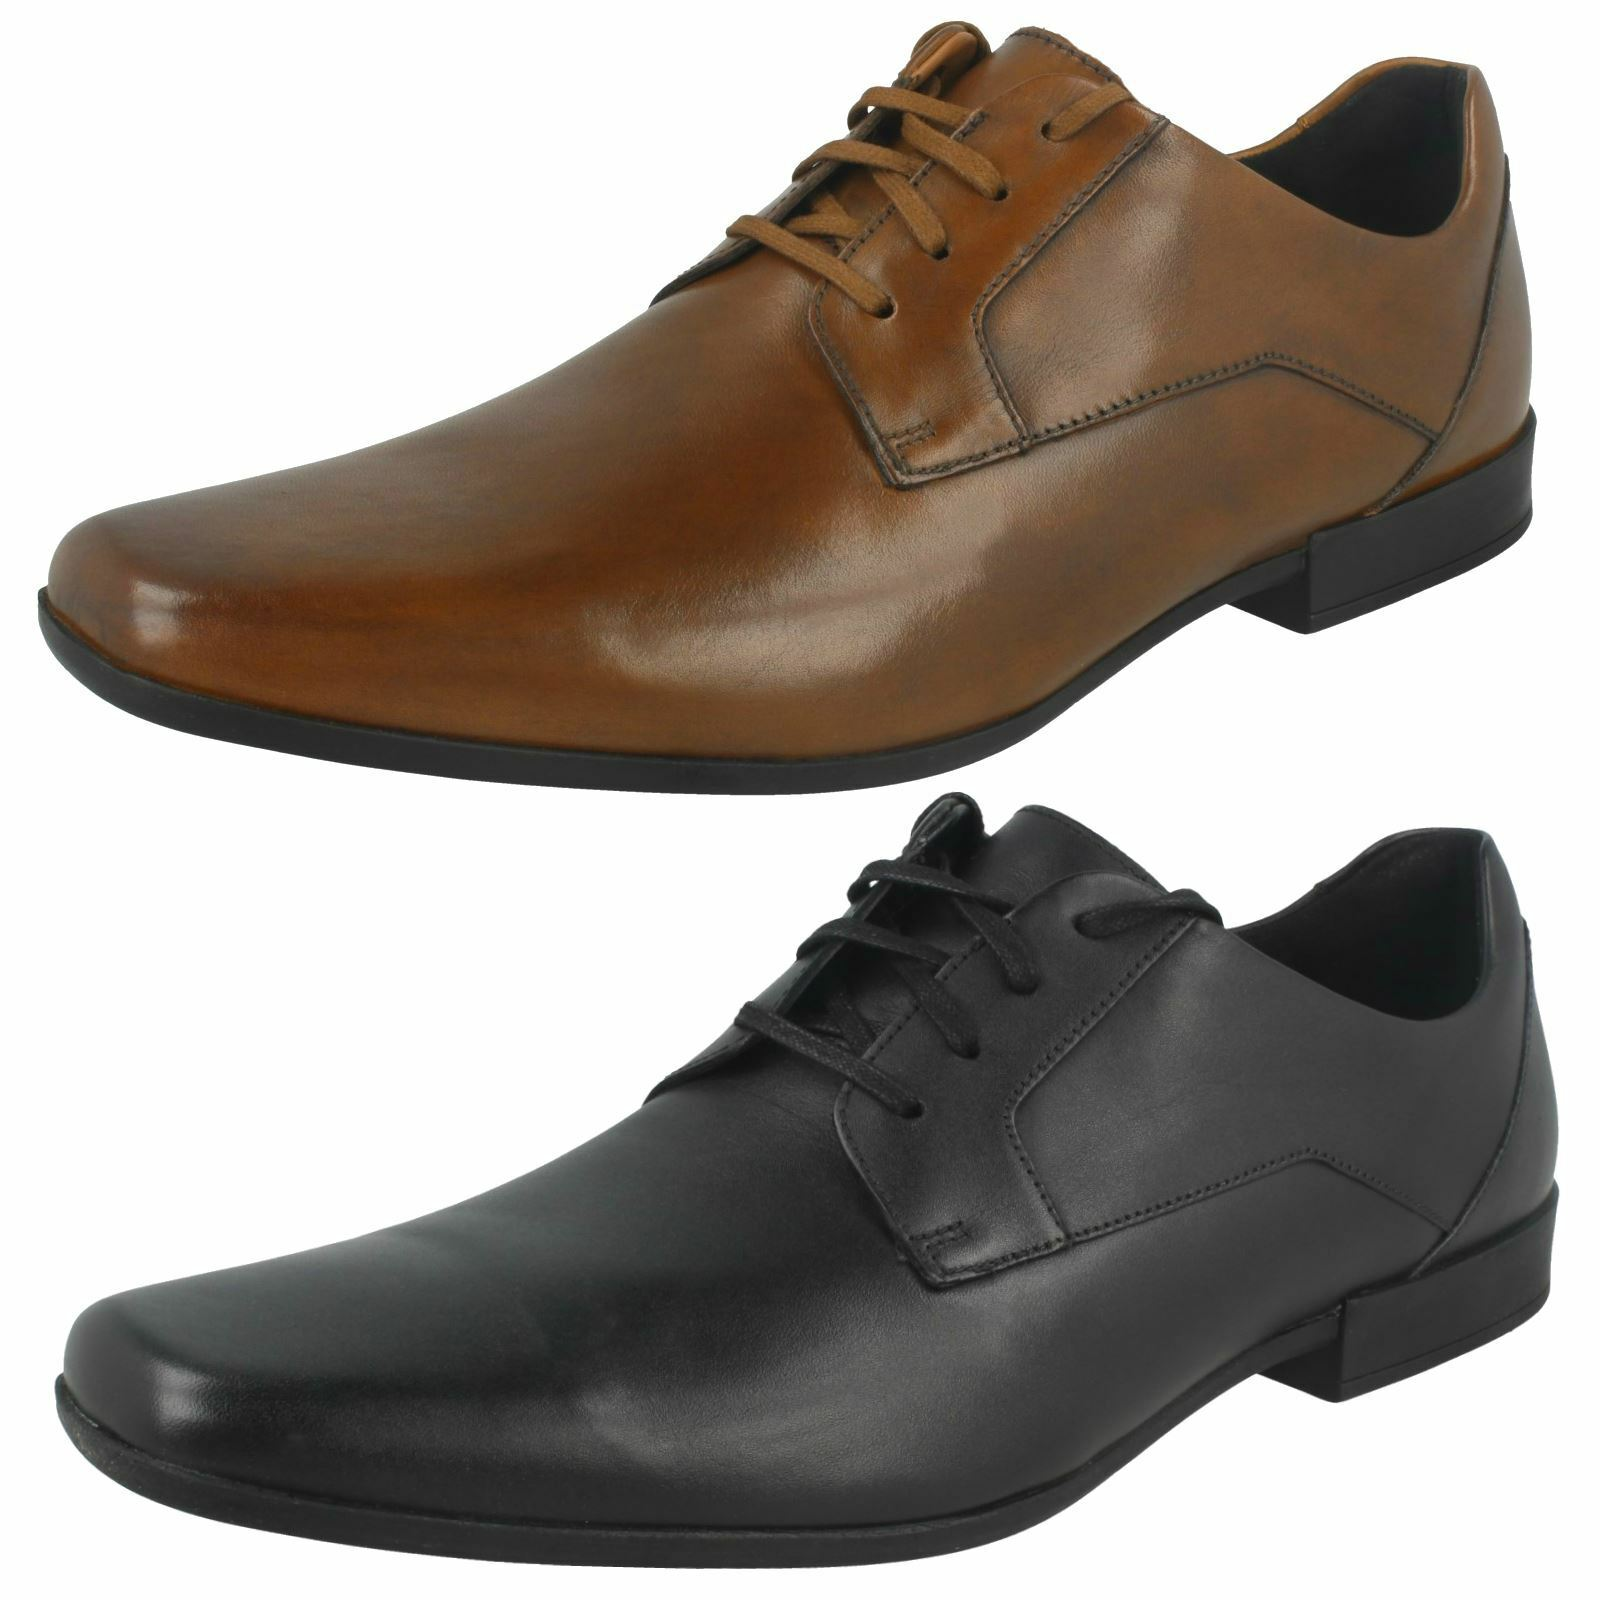 Uomo Clarks Formal Lace Up Schuhes Glement Lace